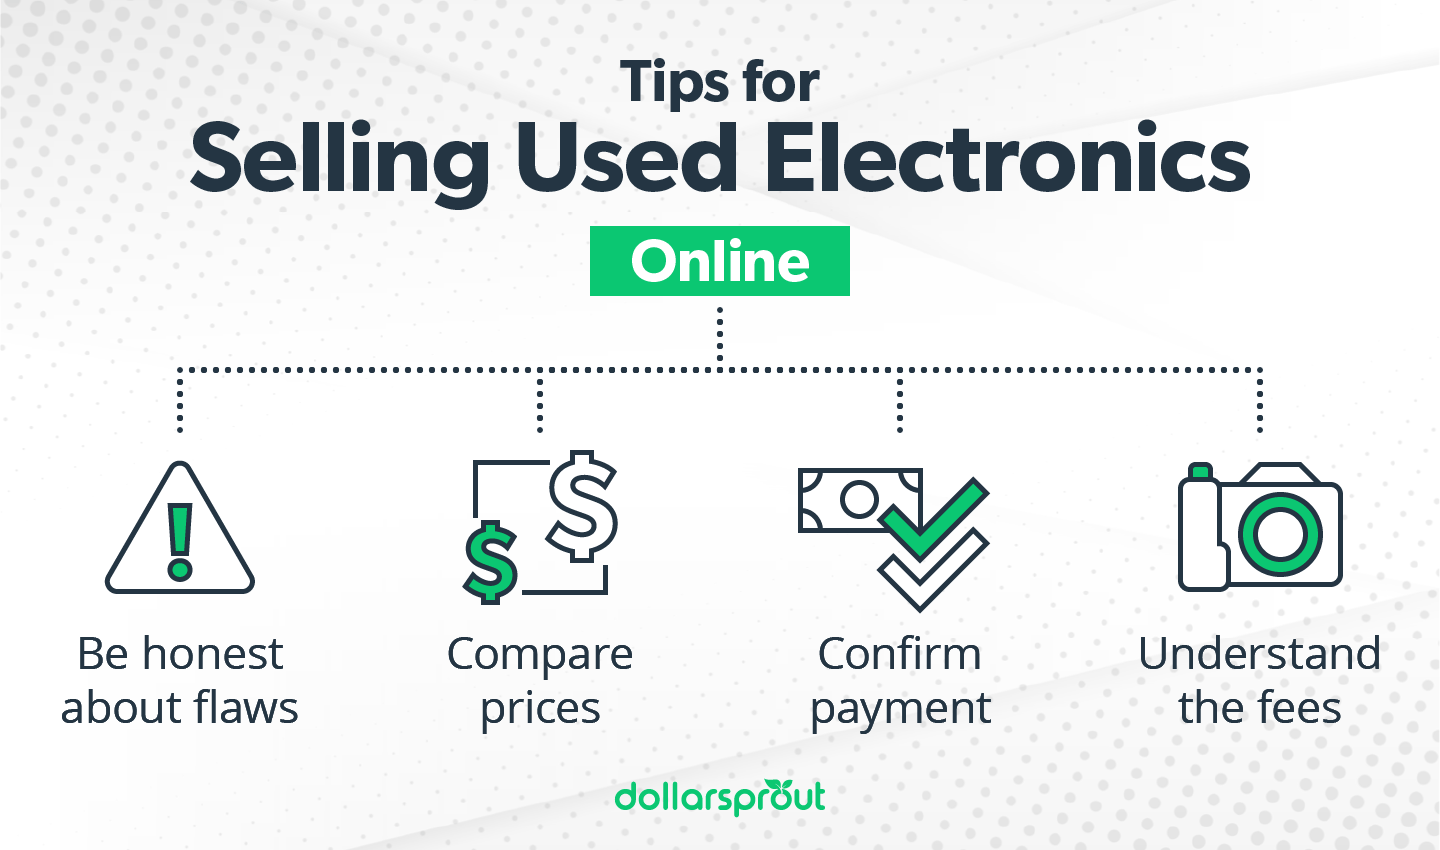 Tips for selling used electronics